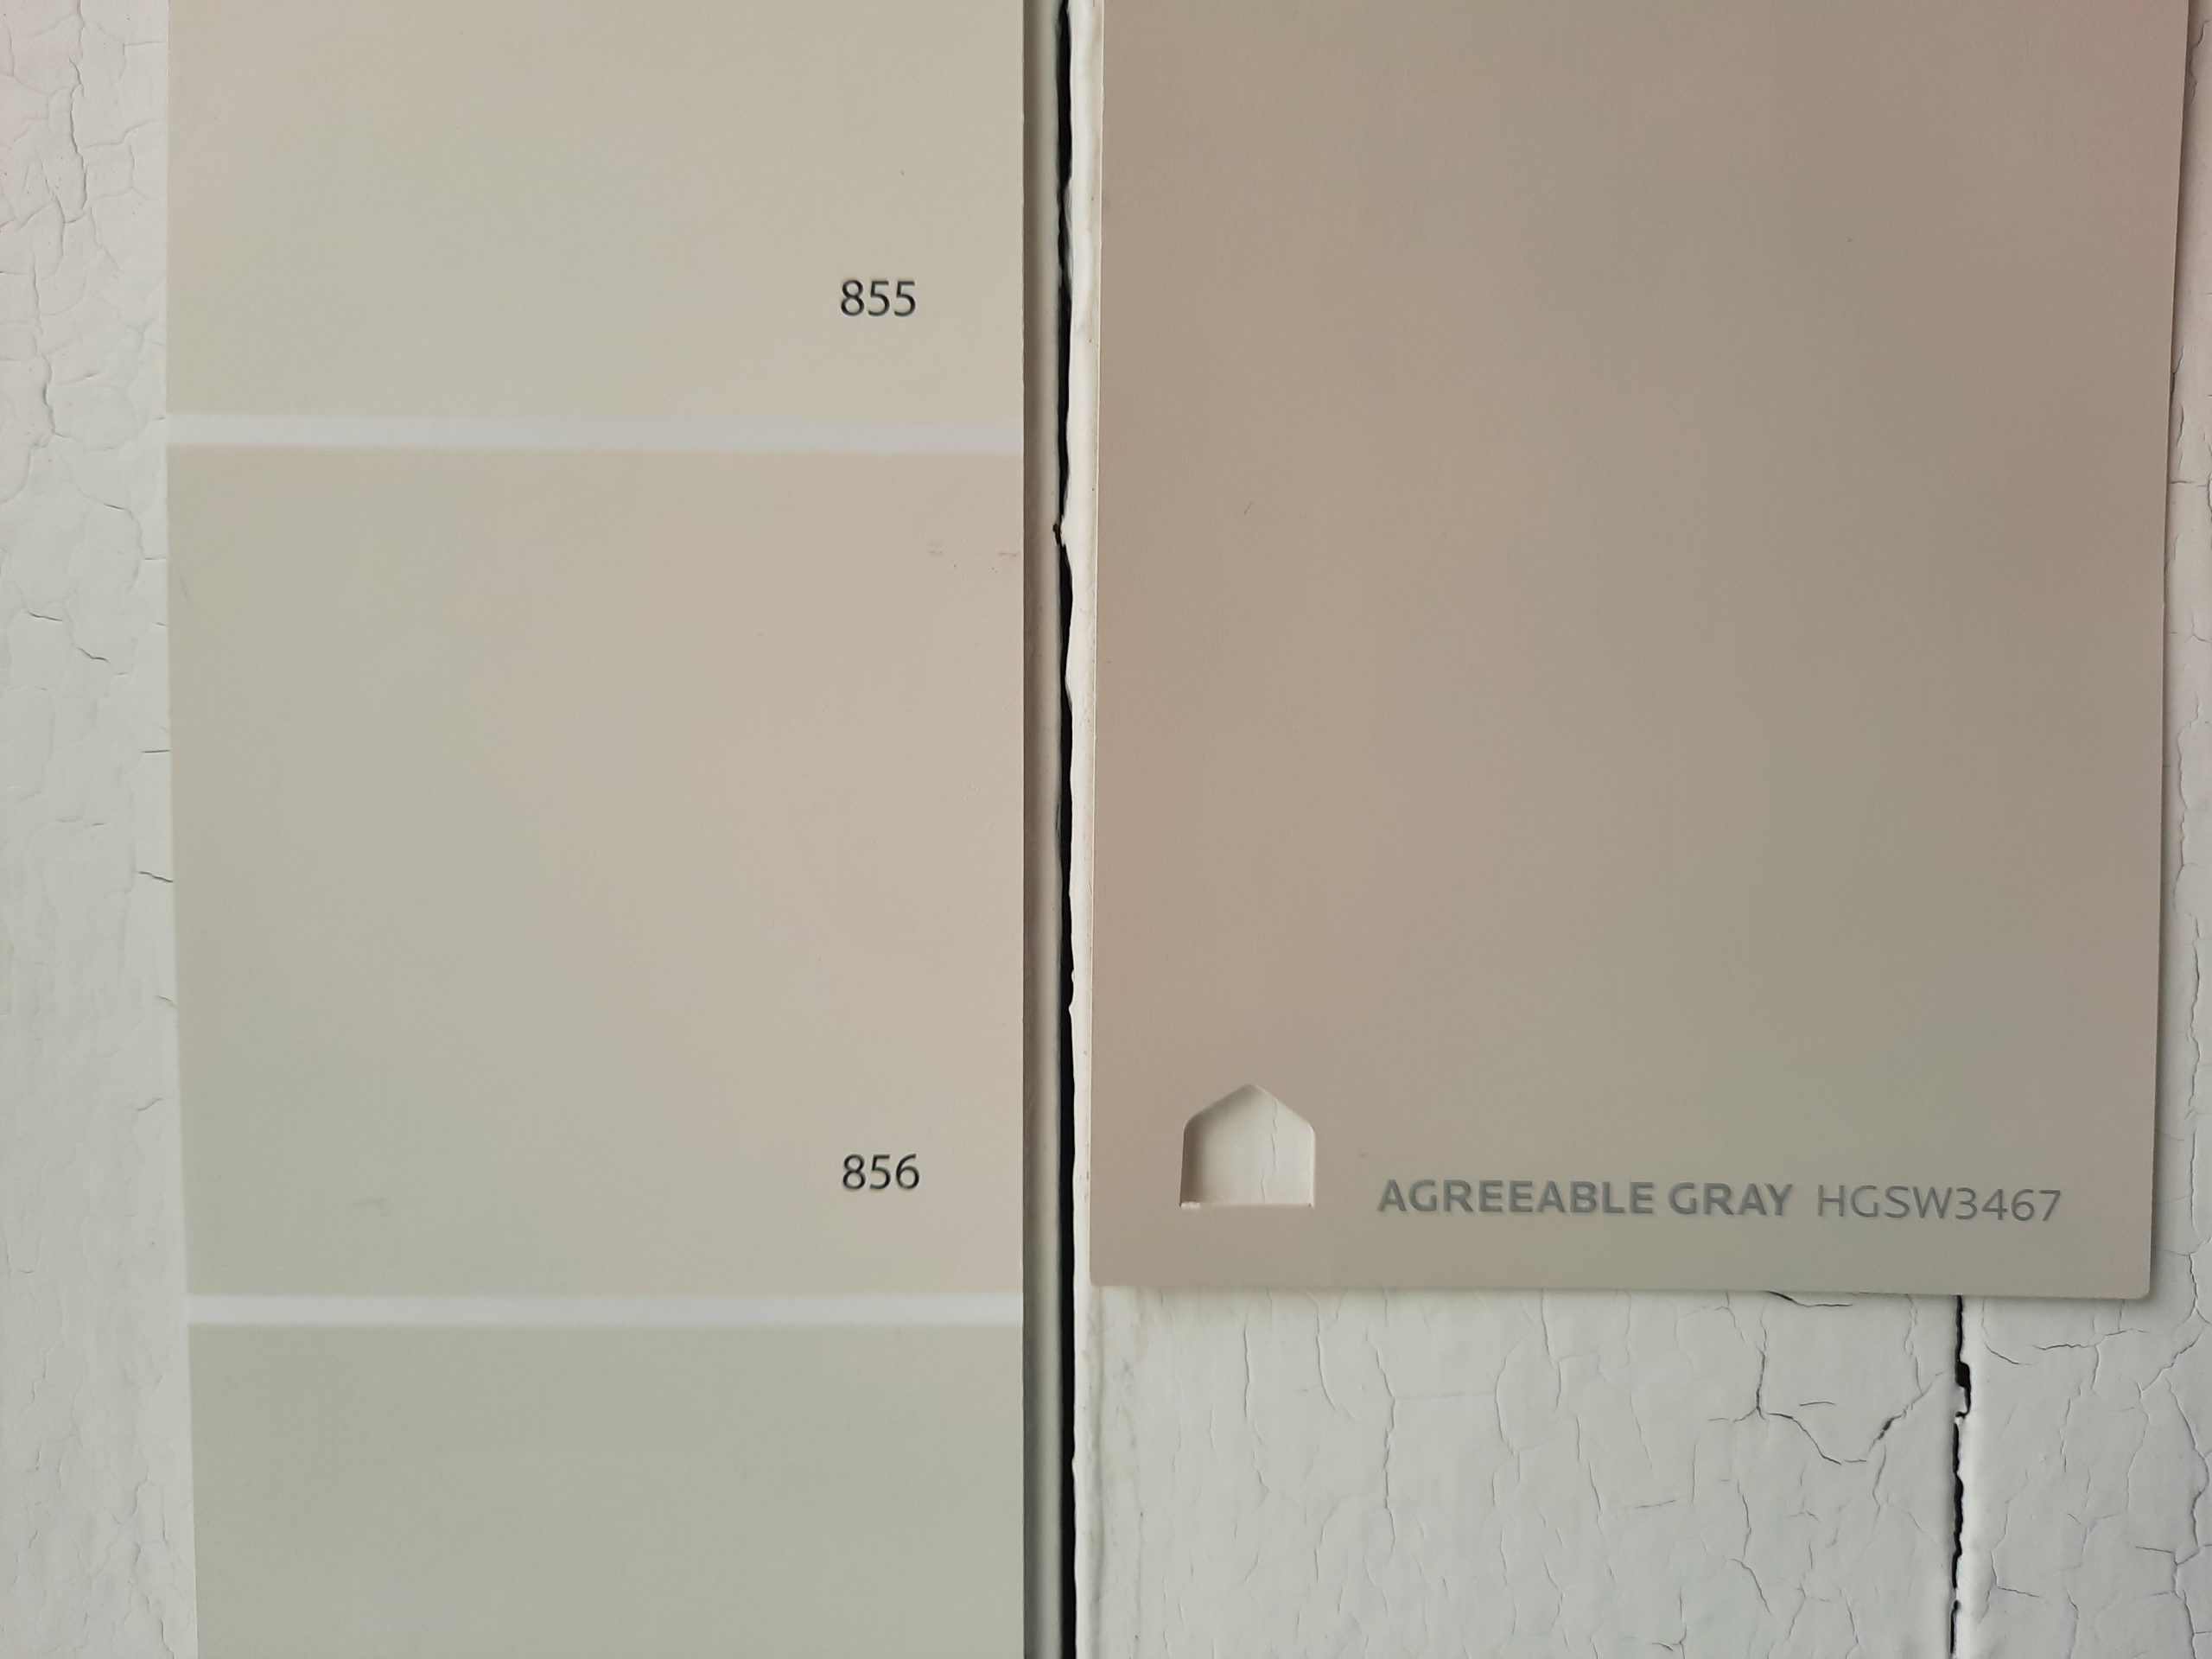 9 Silver Satin vs Agreeable Gray scaled